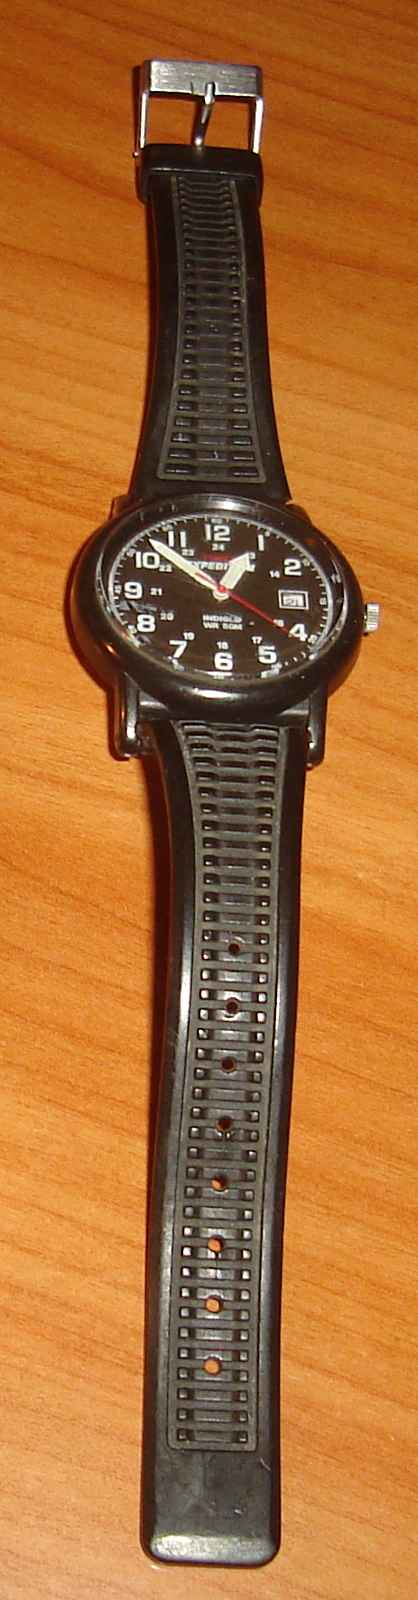 The watch in question